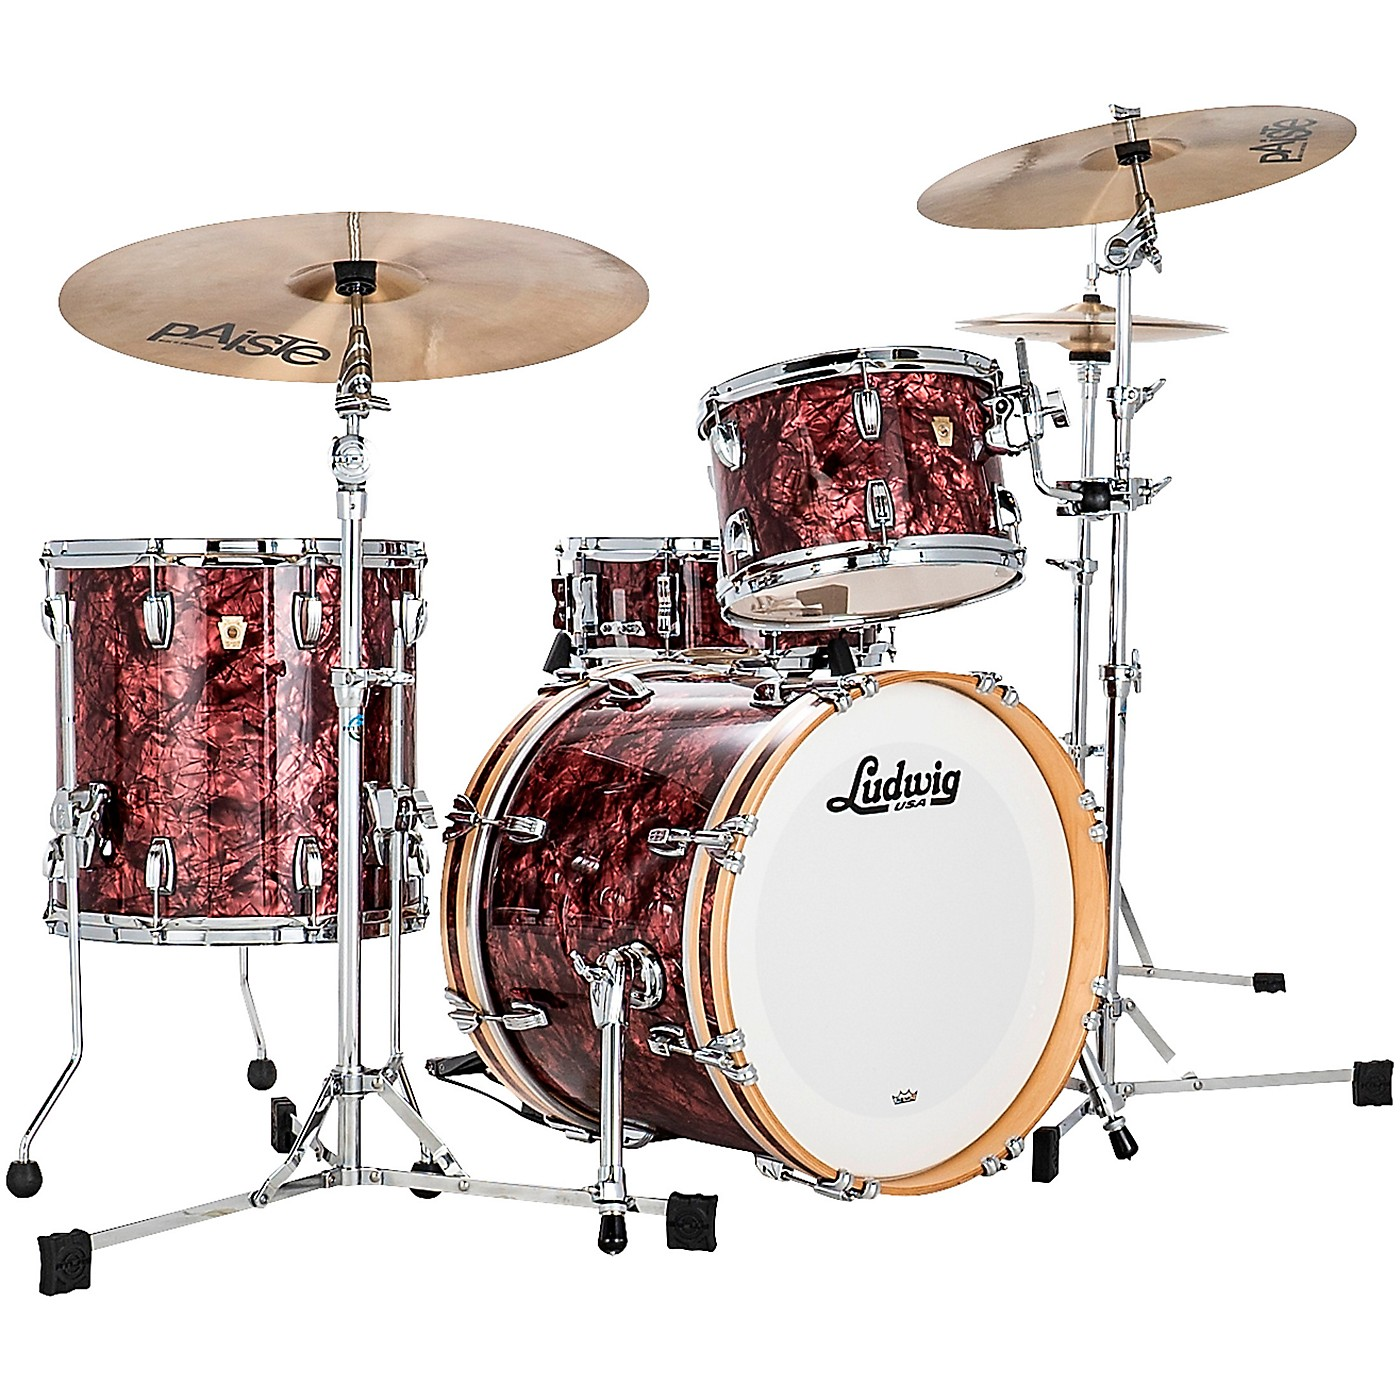 Ludwig Classic Maple 3 Piece Jazzette Shell Pack with 18 in. Bass Drum thumbnail